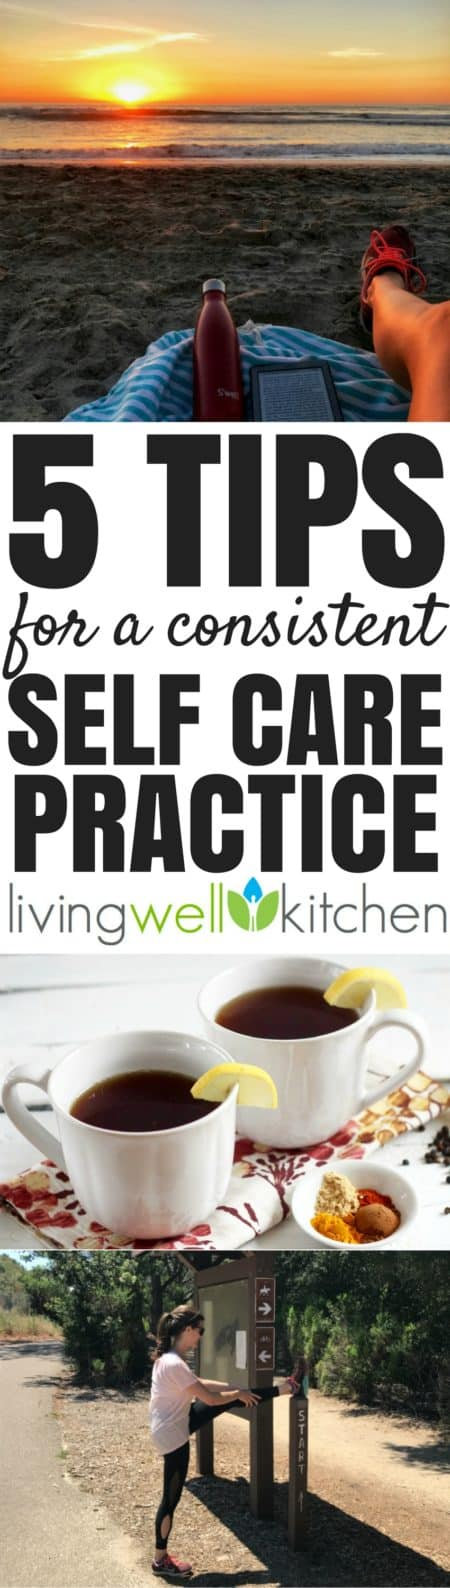 5 realistic tips for having a consistent, enjoyable self care practice from @memeinge, so you can show yourself some love.